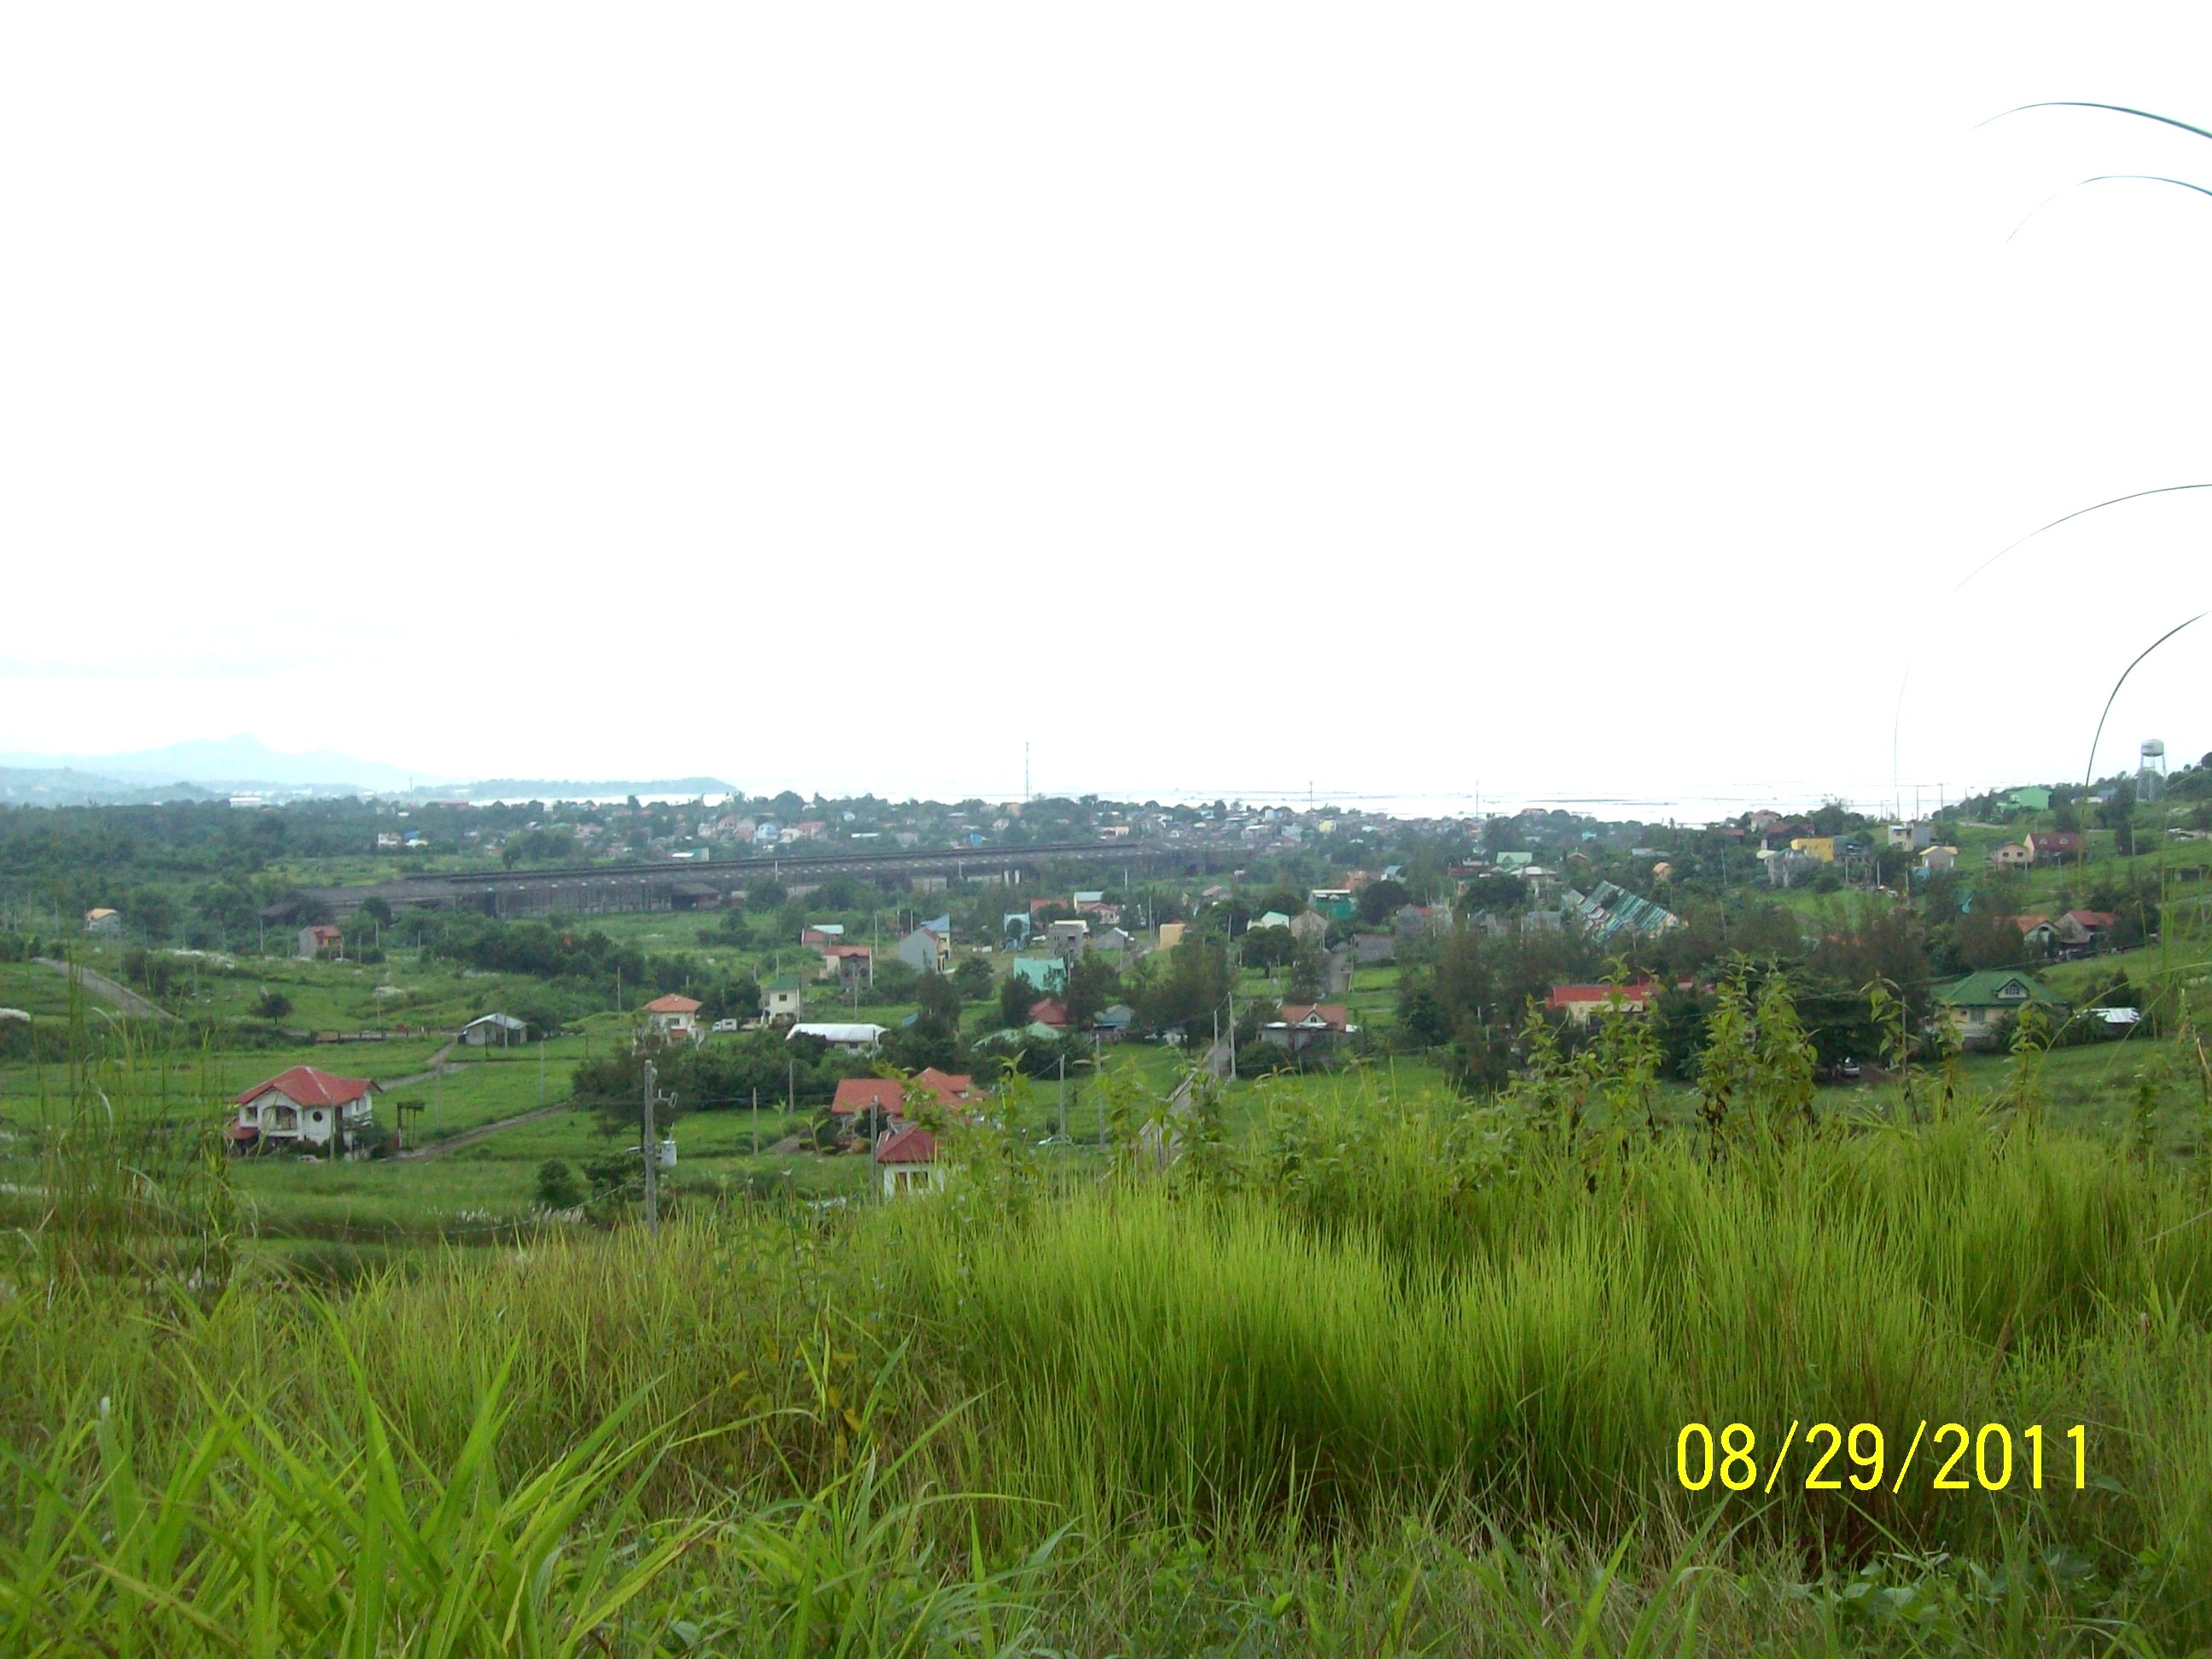 FOR SALE: Lot / Land / Farm Rizal > Other areas 20